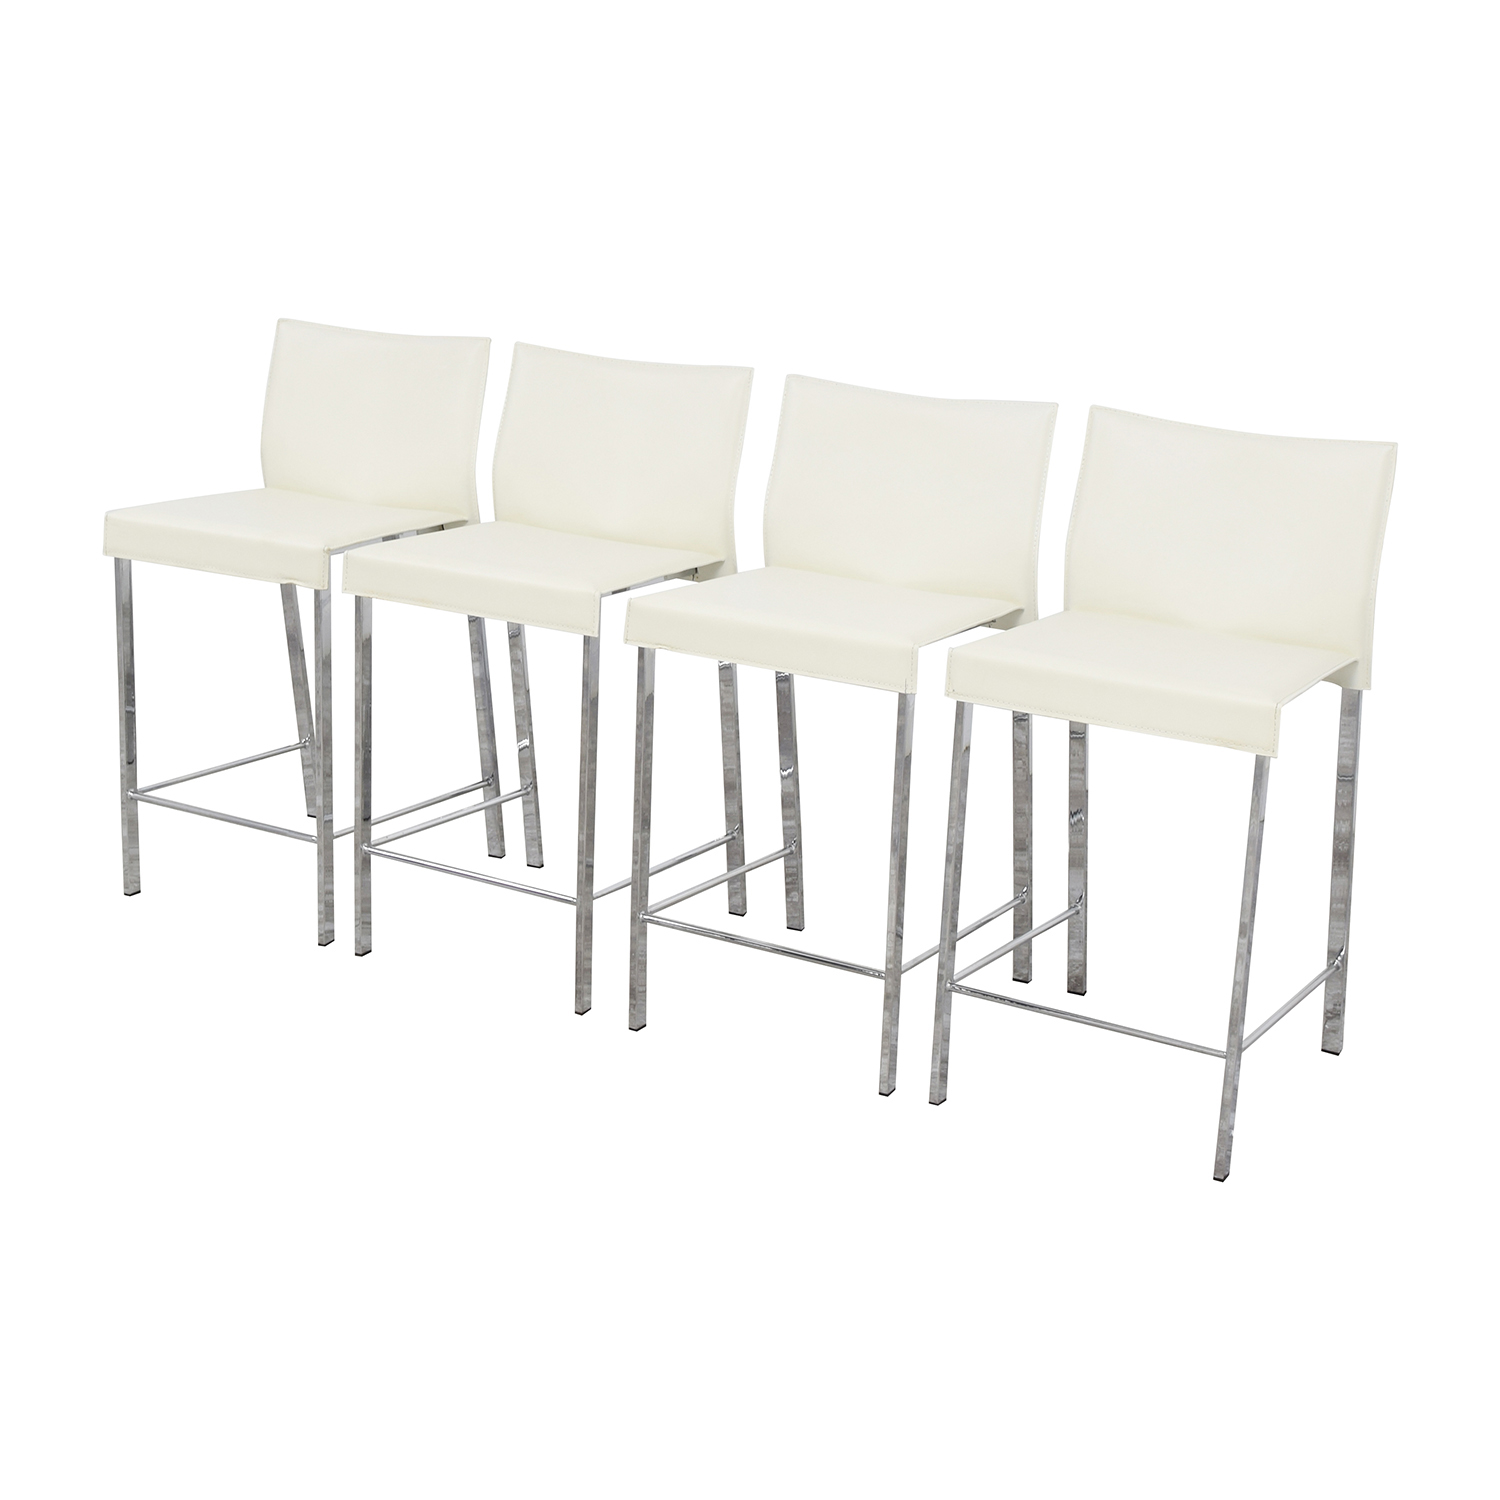 83 off inmod inmod riley c counter white stool chairs for In mod furniture